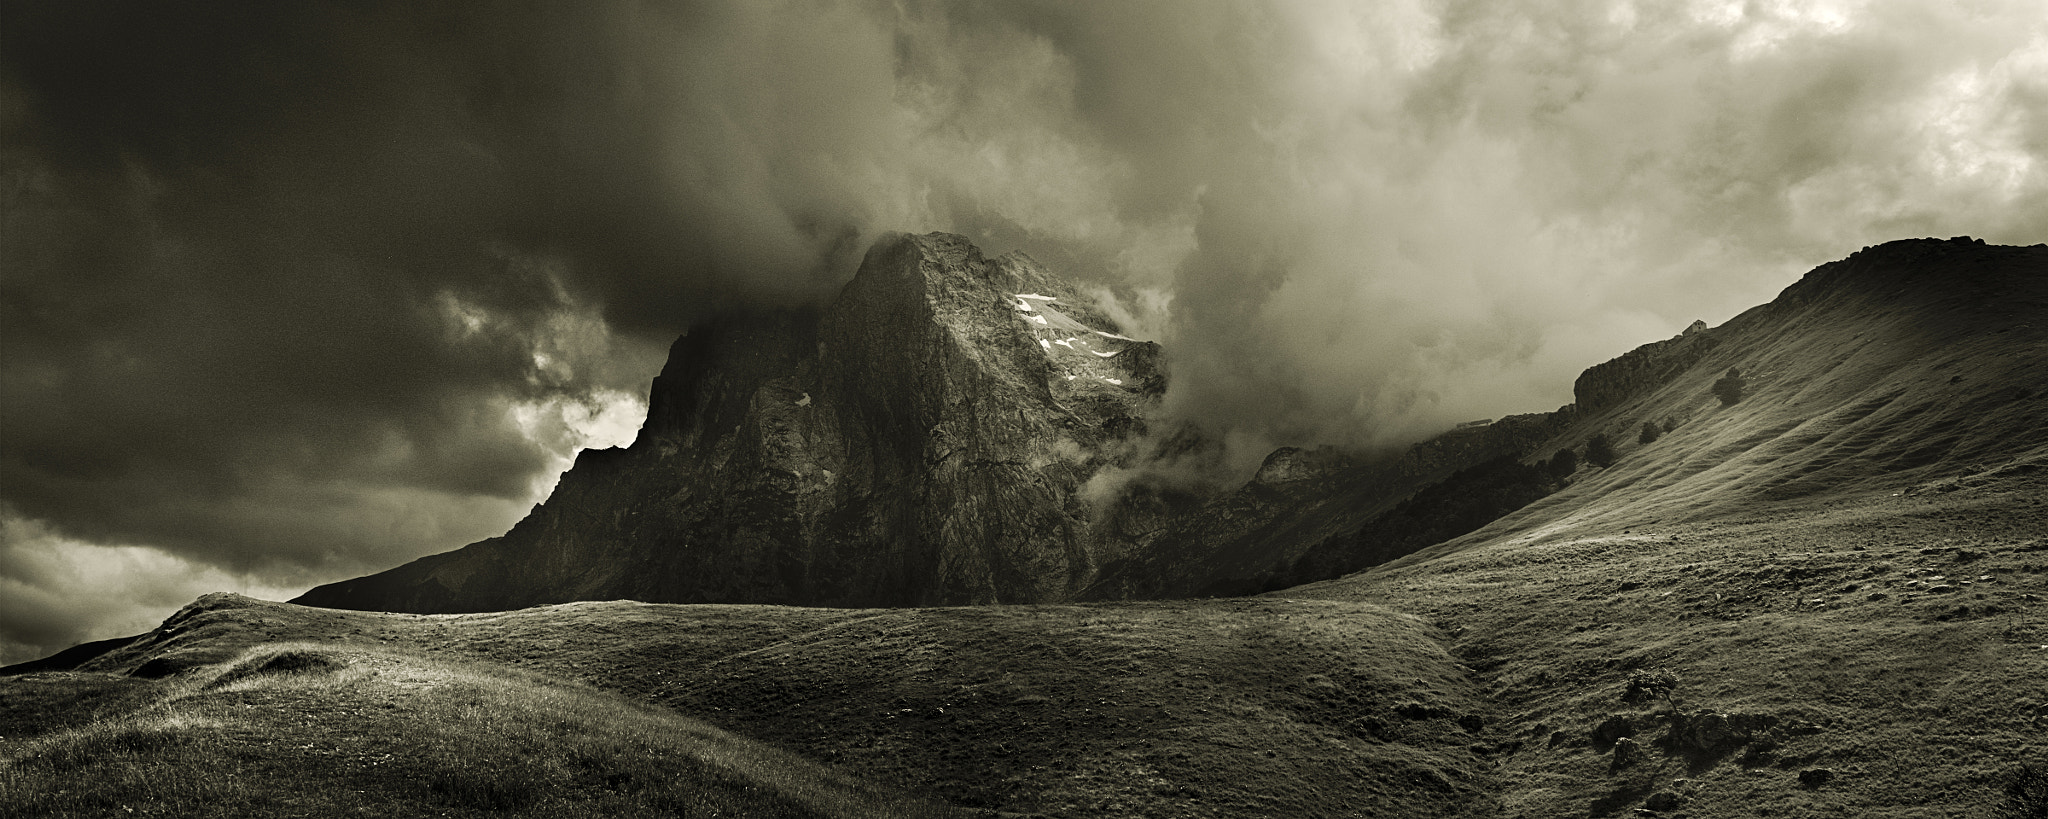 Photograph Gran Sasso, Italia by Antonio Ranieri on 500px